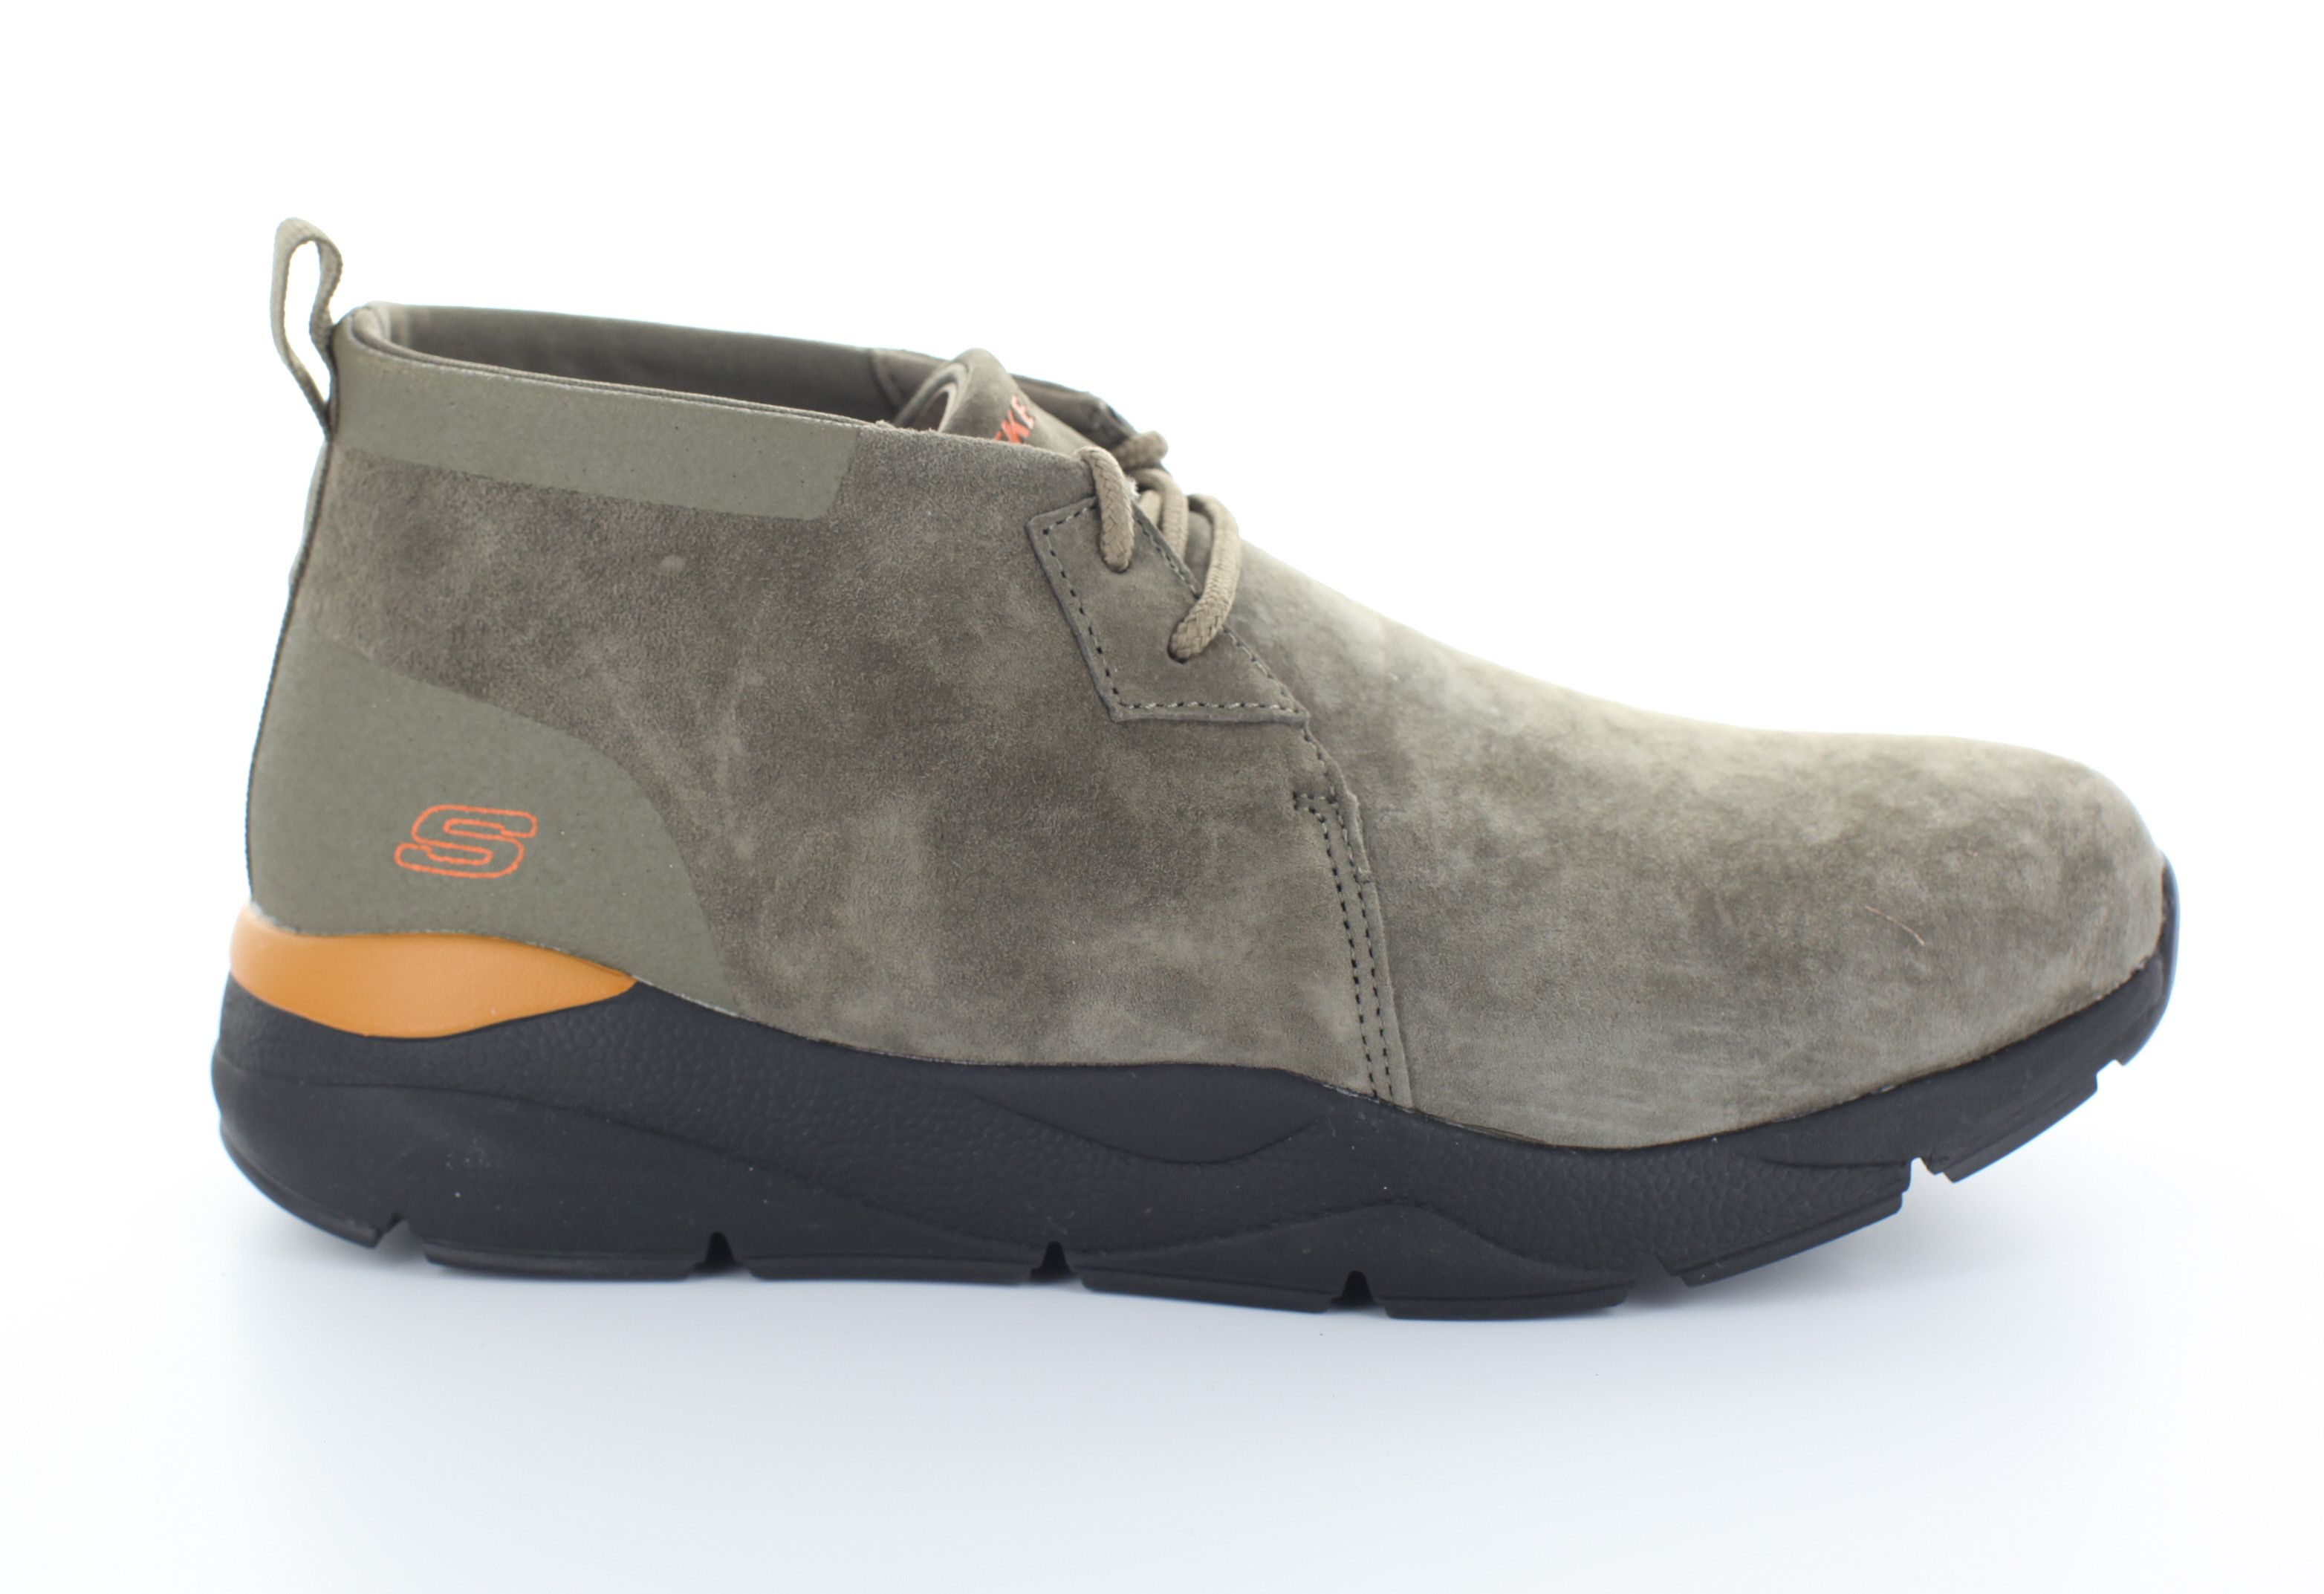 Skechers SUPERIOR 2.0 BRUNCO férfi bakancs